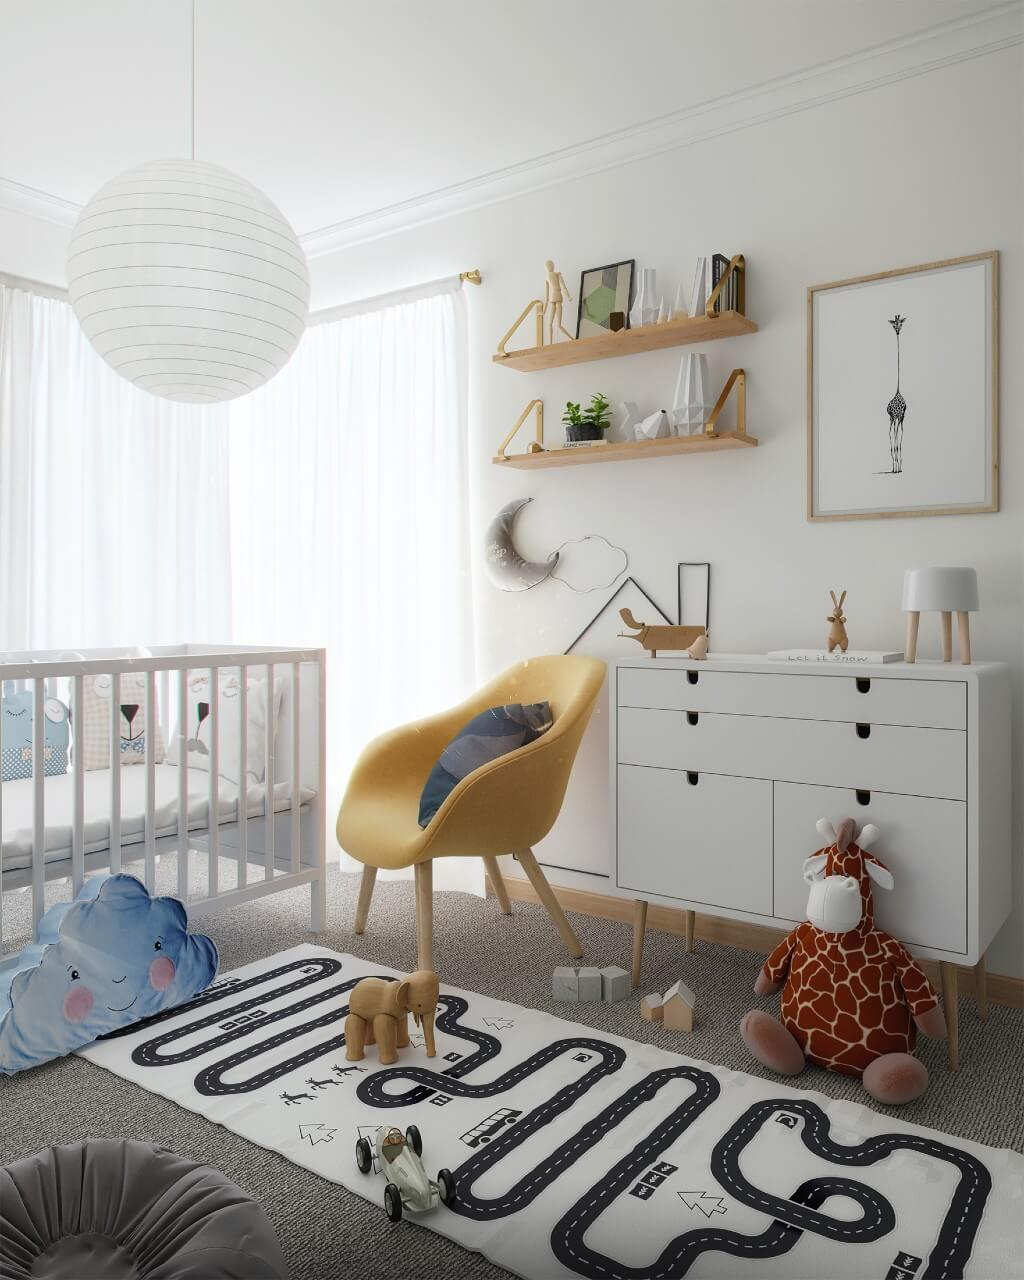 Duy Khanh Vo, Vietnam | Freelance Interior Designers: 24 Fun and Stylish Children Room Decor Ideas